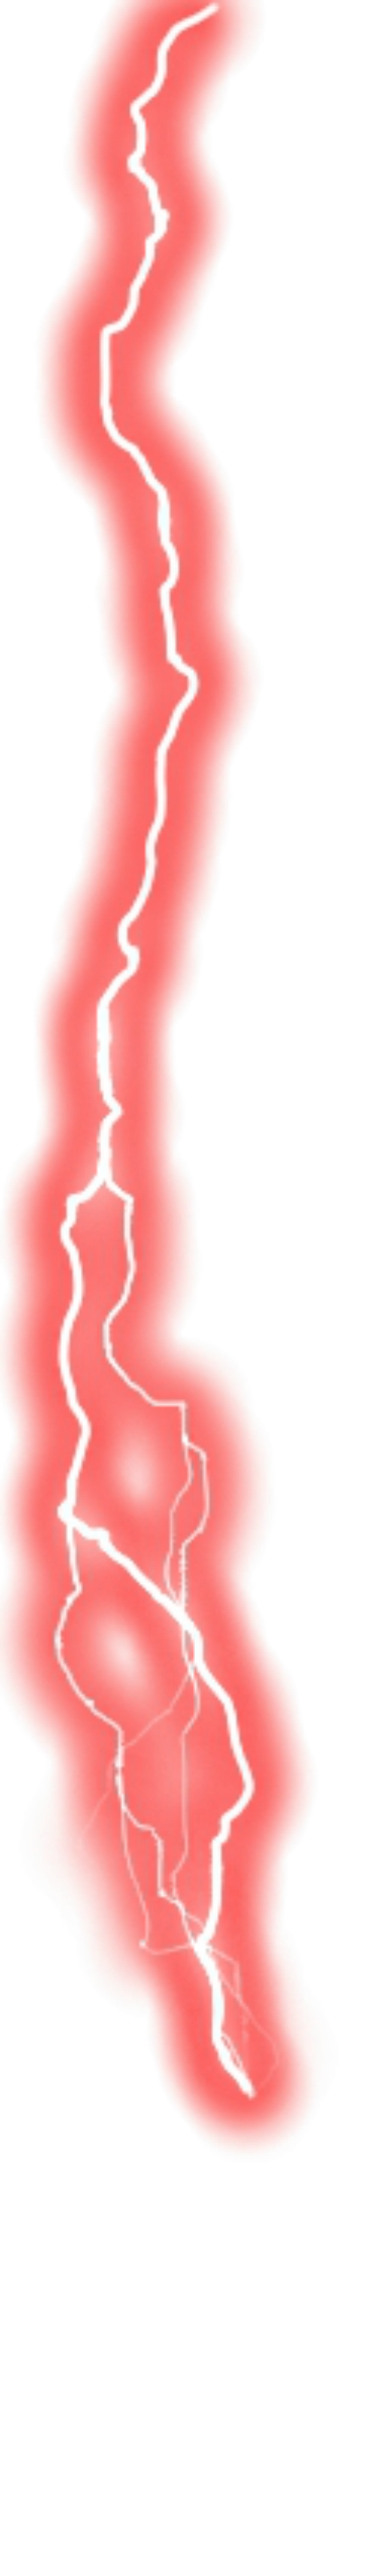 Red lightning png. Wizard wand of dragons